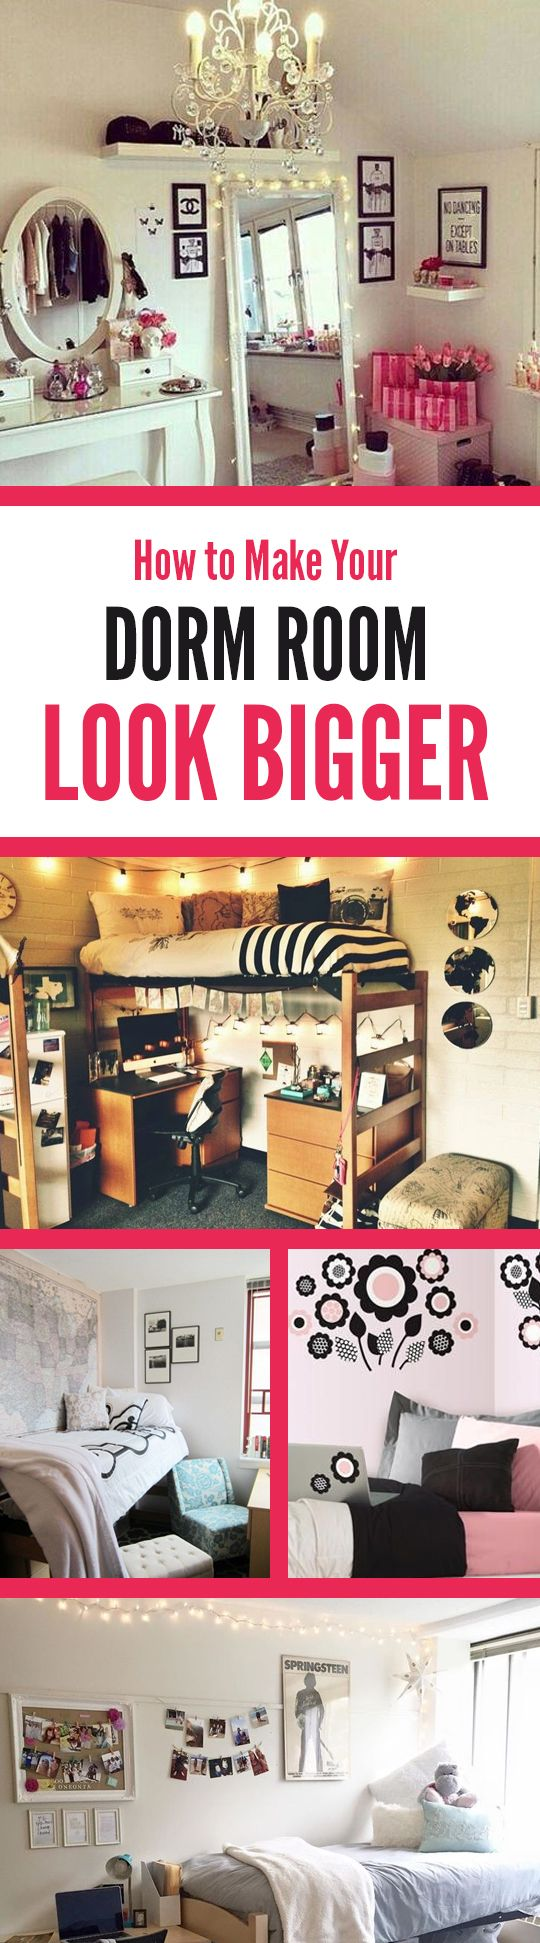 How to make any room look bigger just by painting it the - 6 Tips To Make Your Dorm Room Look Bigger